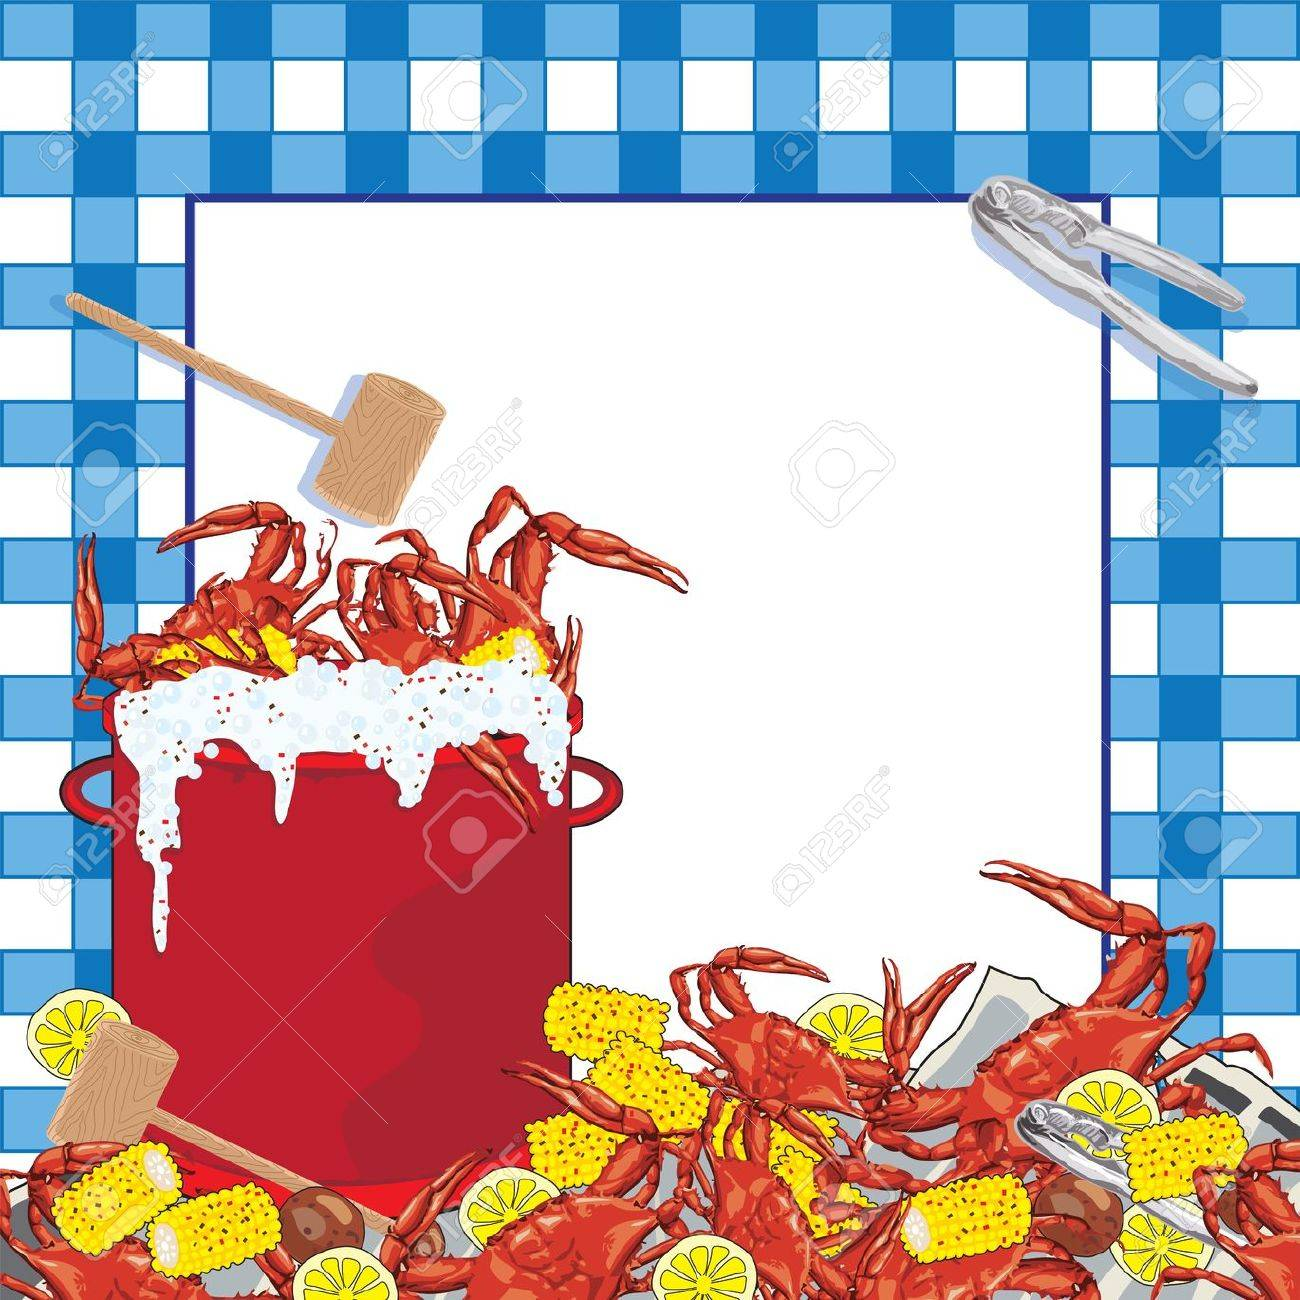 1300x1300 80 Crab Boil Stock Vector Illustration And Royalty Free Crab Boil